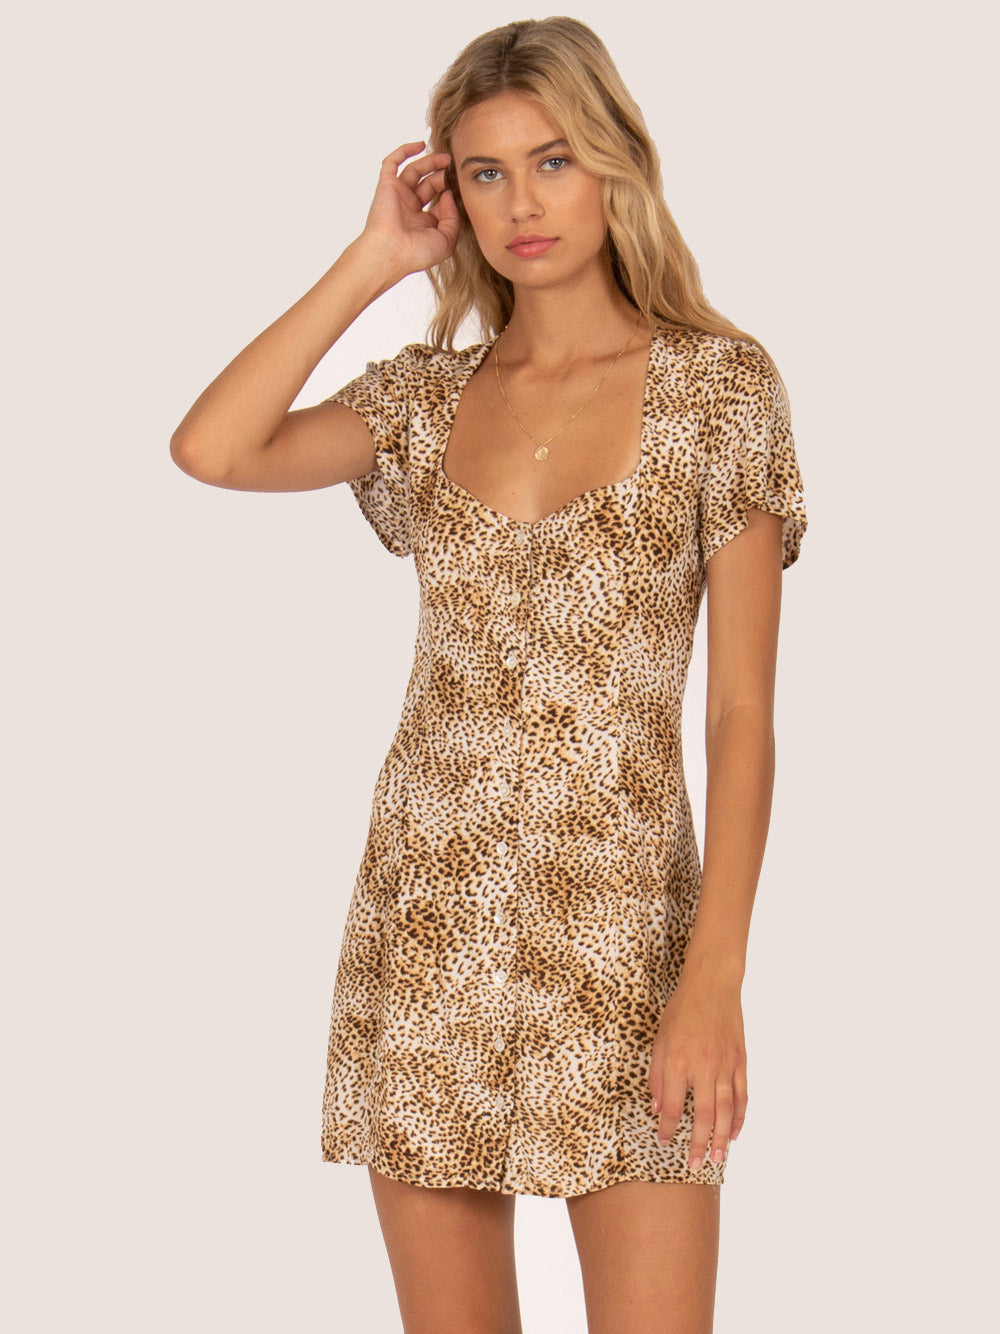 AMUSE SOCIETY Iman Dress - Natural